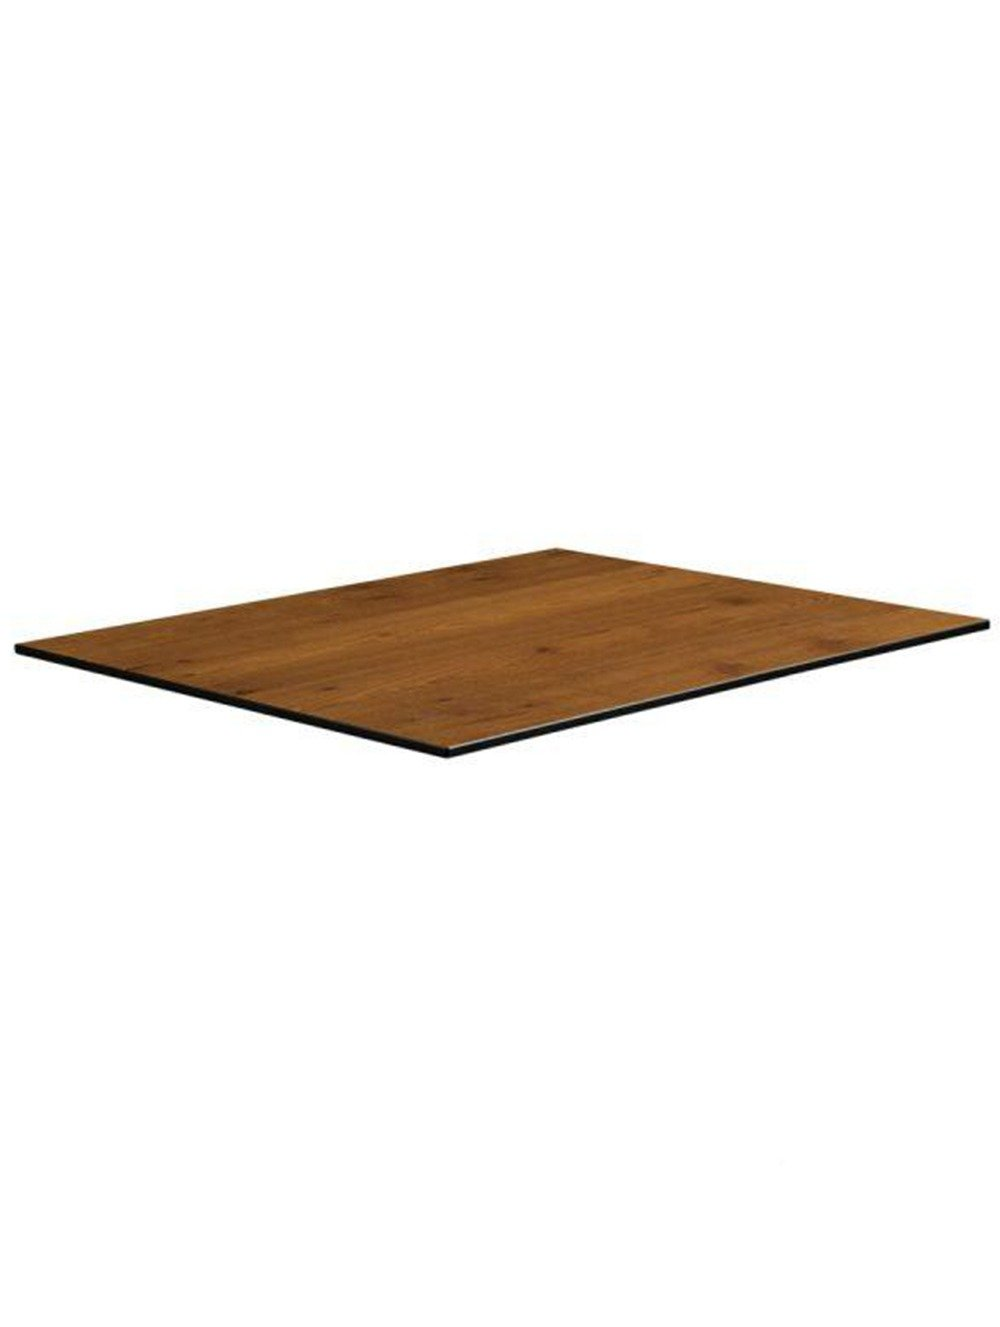 Extrema HP wood laminate